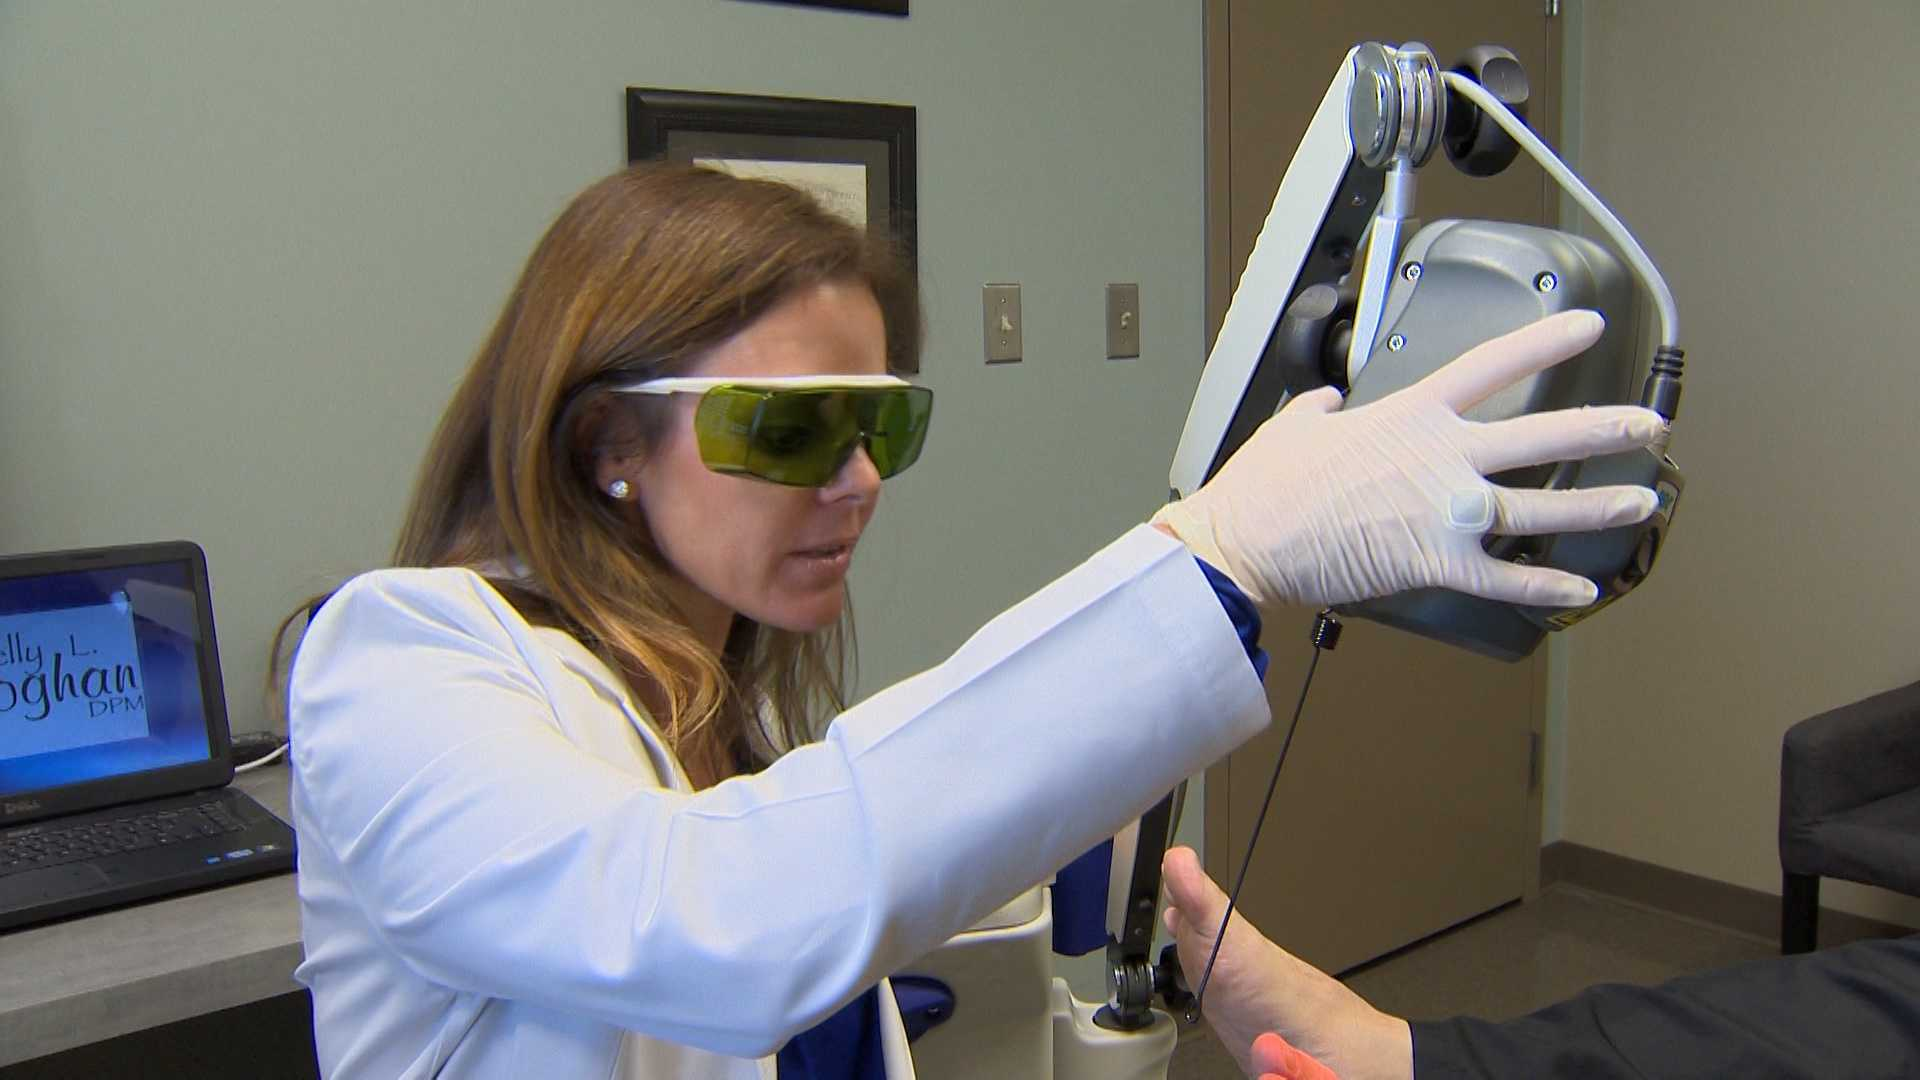 Dr. Kelly Geoghan works to relieve pain with the MLS laser.